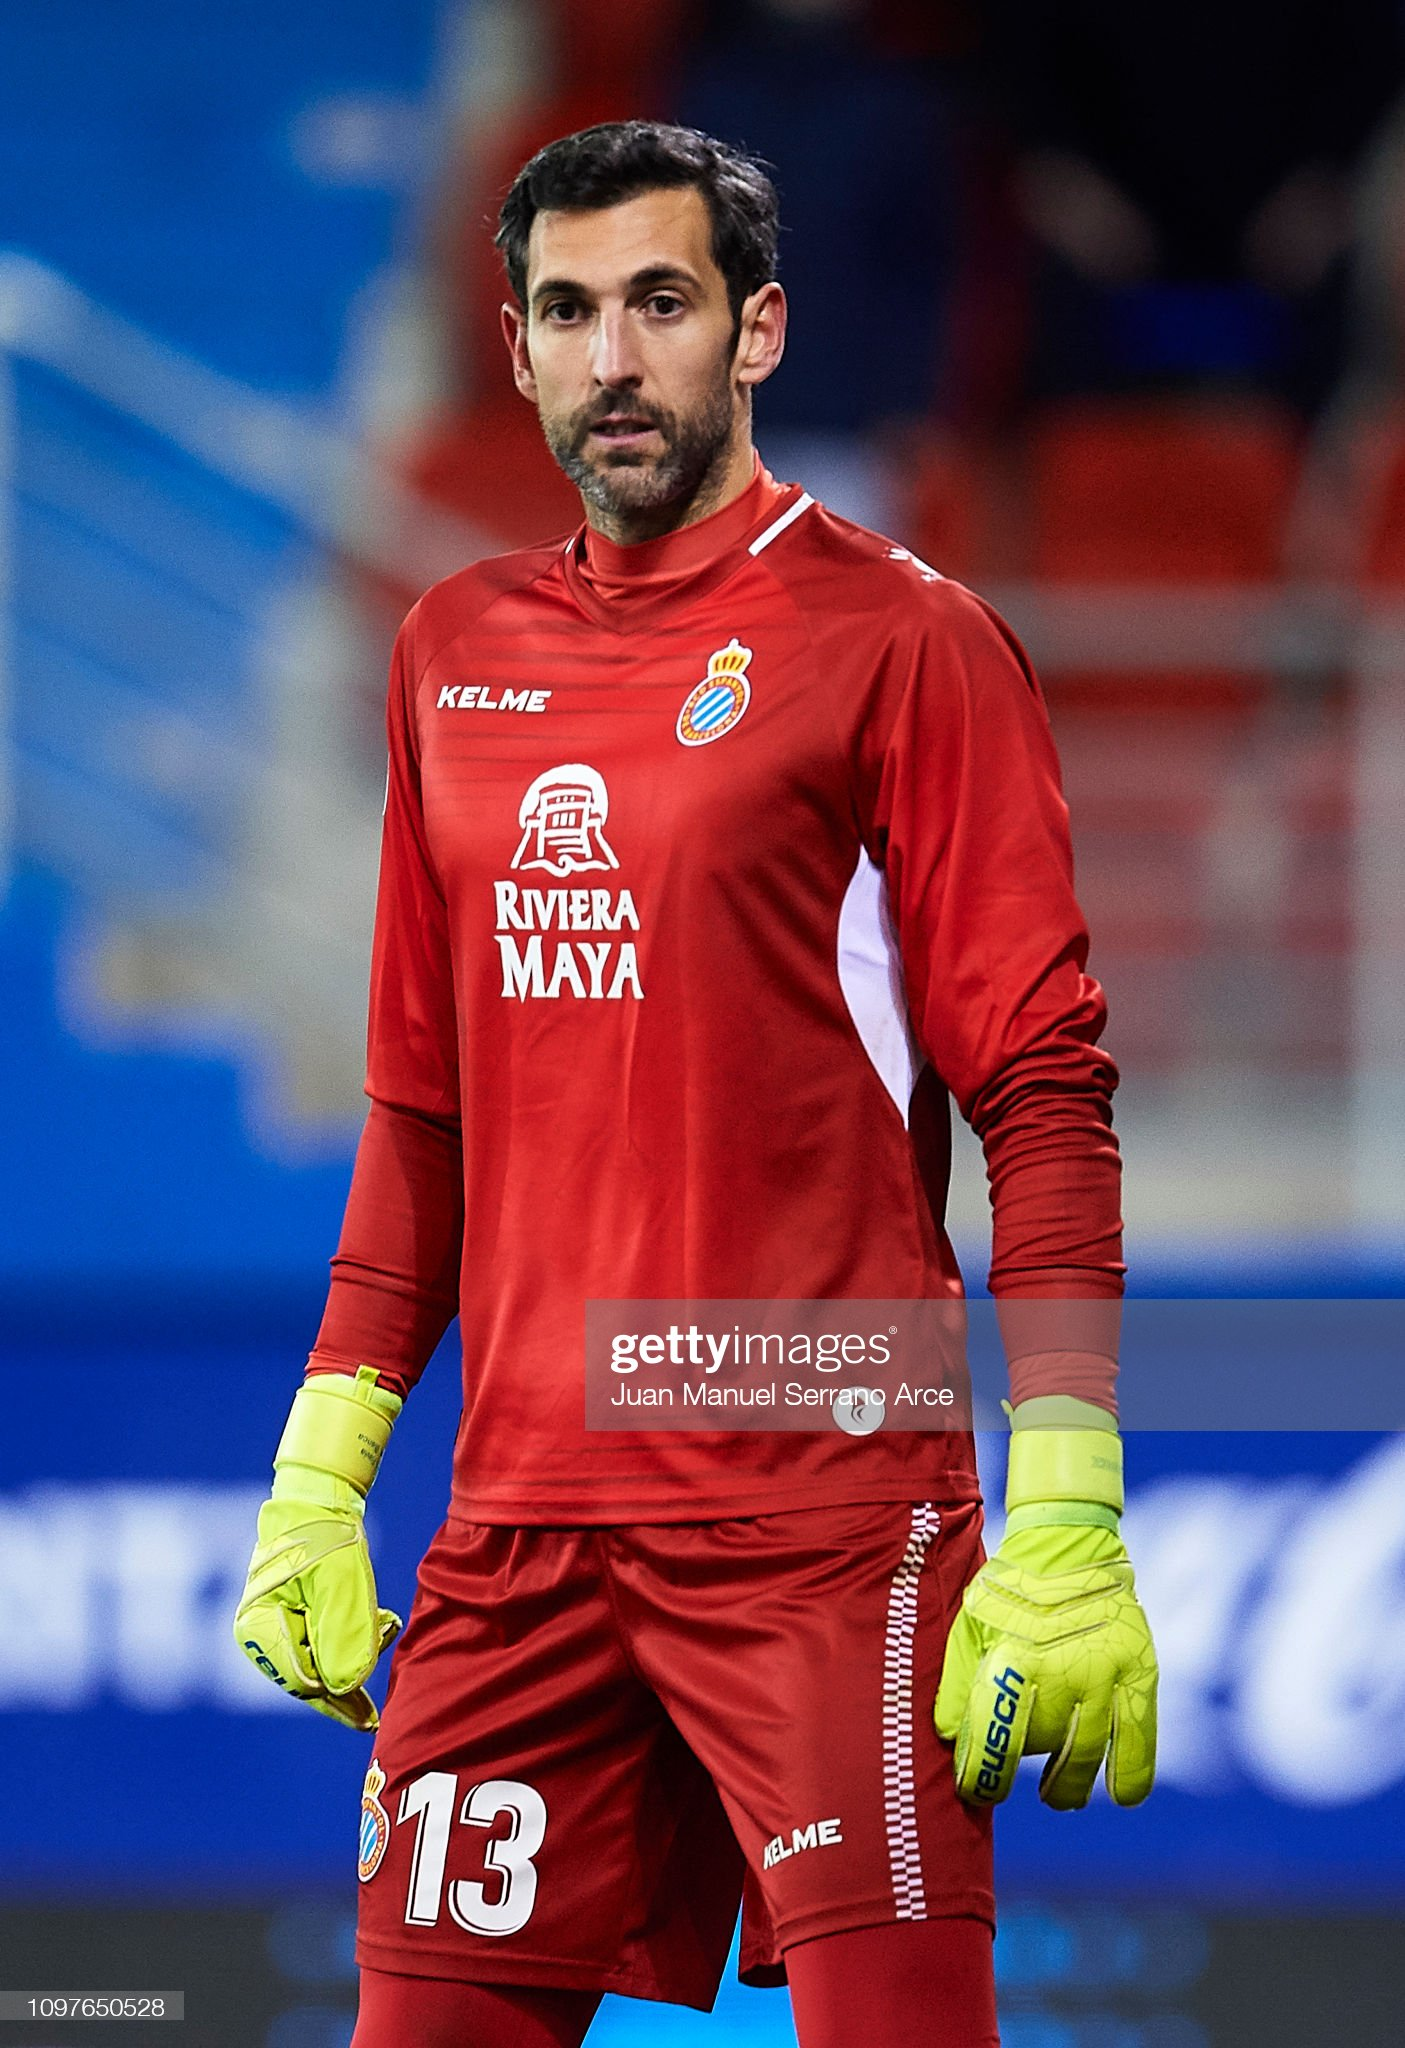 ¿Cuánto mide Diego López? - Altura - Real height Diego-lopez-rodriguez-of-rcd-espanyol-reacts-during-the-la-liga-match-picture-id1097650528?s=2048x2048